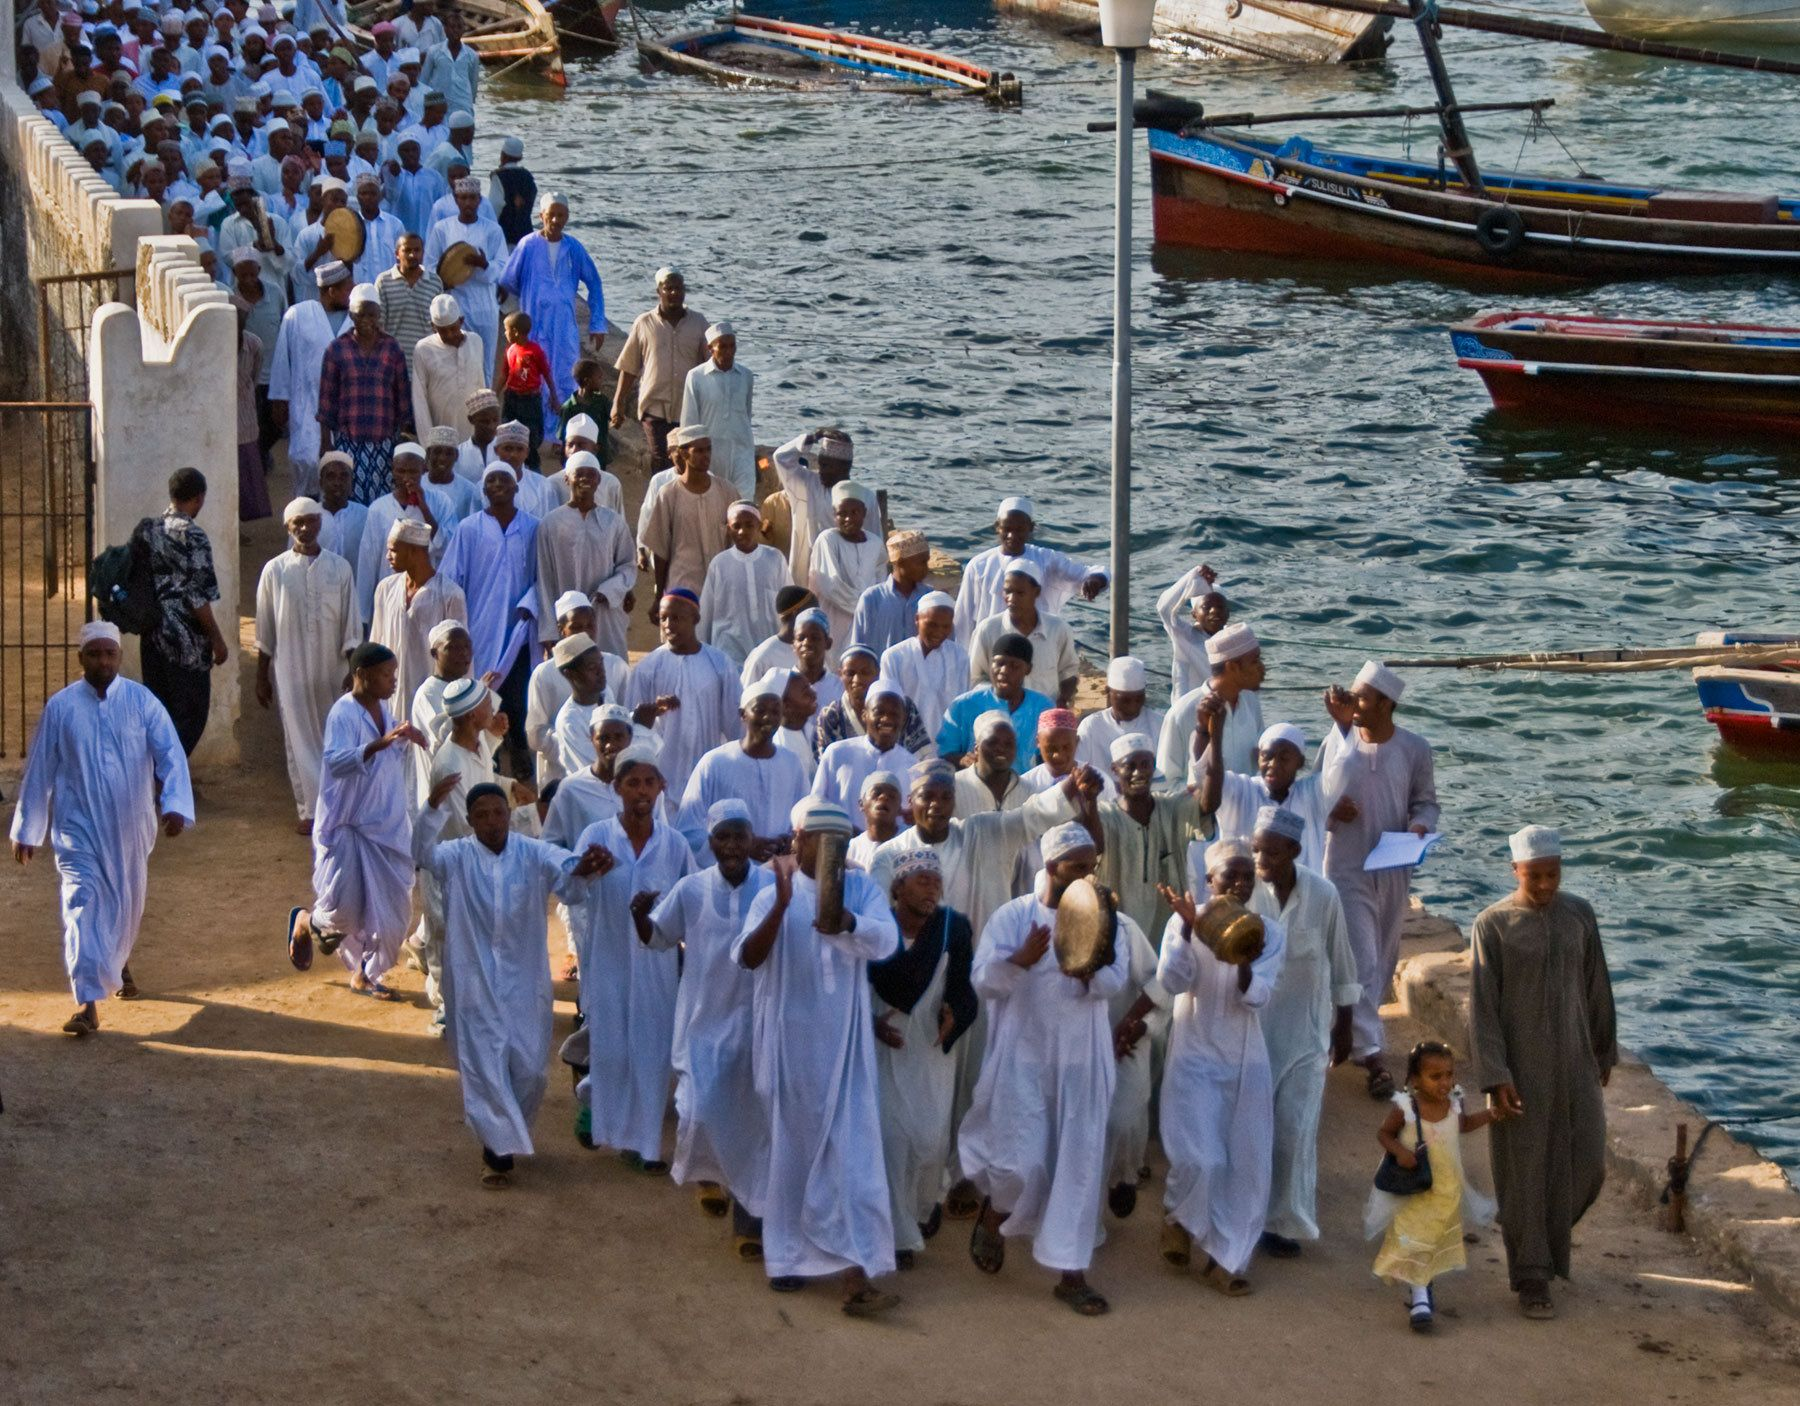 Muslims Celebrating Mohammad's Birthday, Lamu Island, Indian Ocean